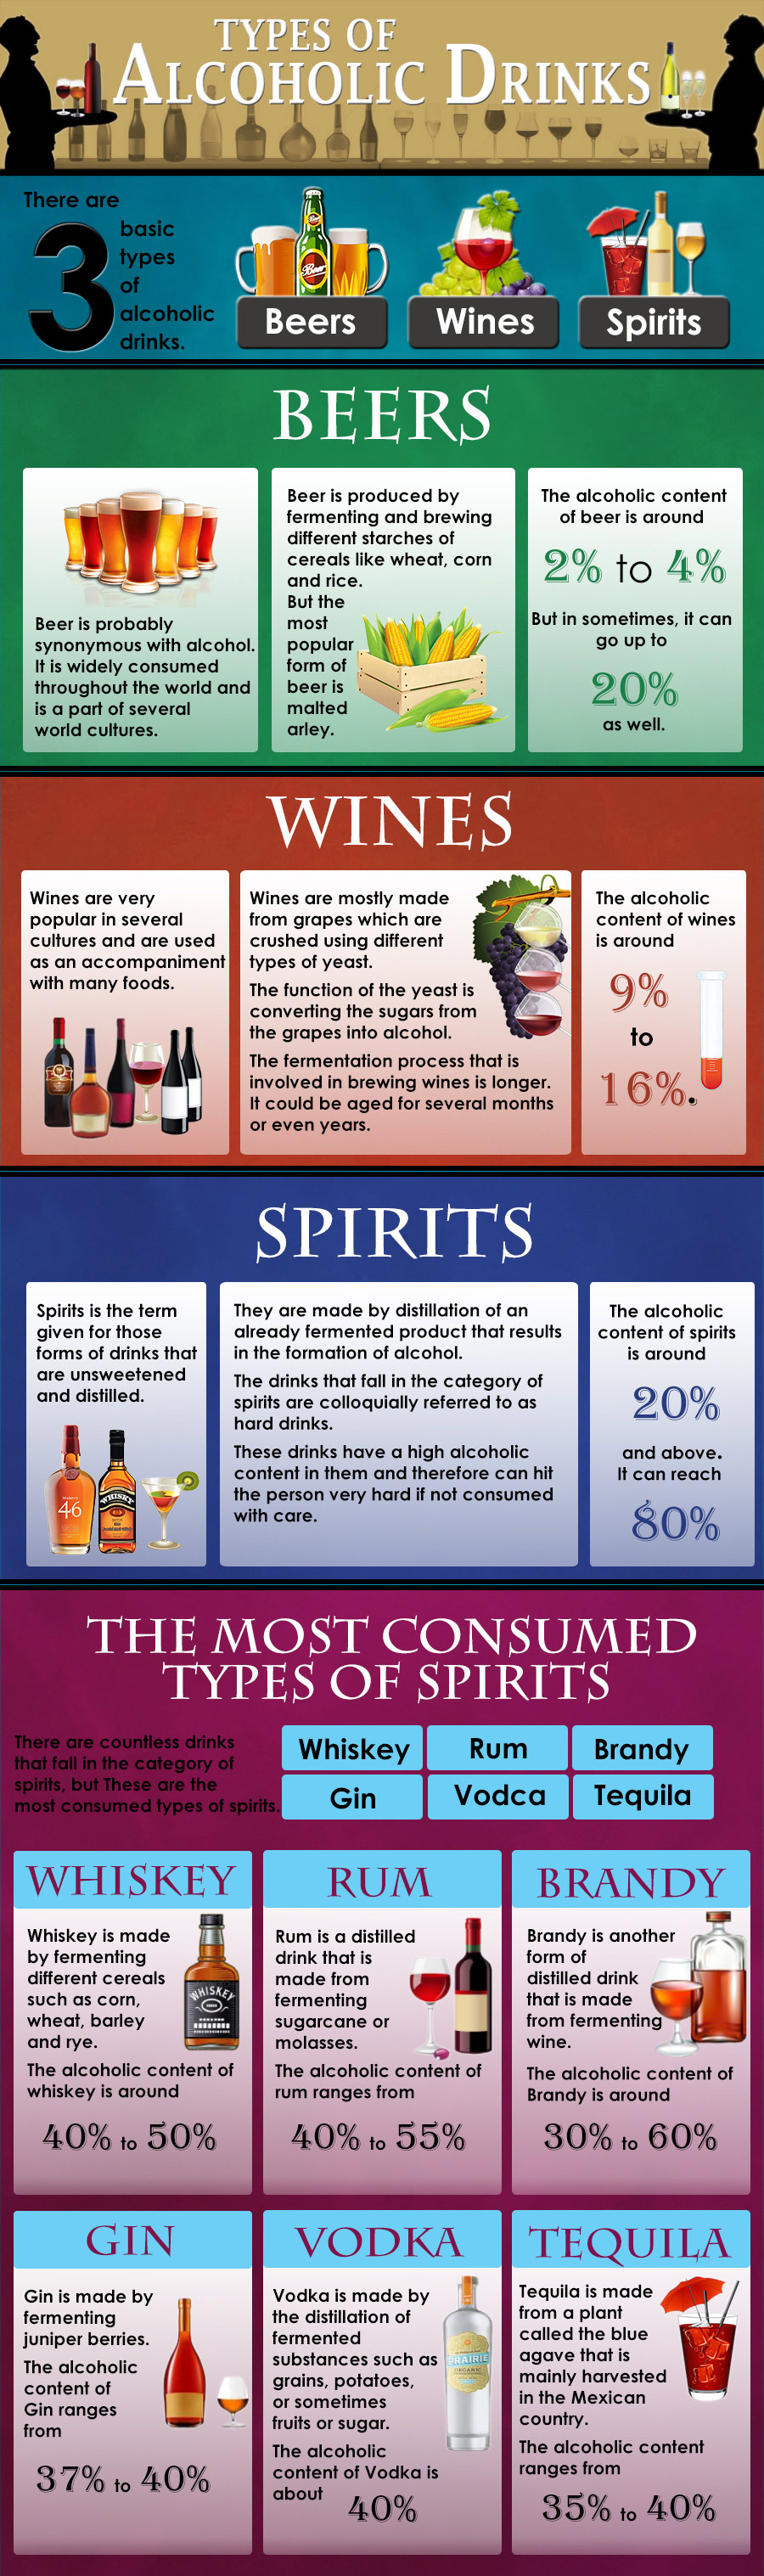 alcohol content in typical drinks, addiction, beers, wines, spirits, whisky, gin, vodka, equila, brandy, rum